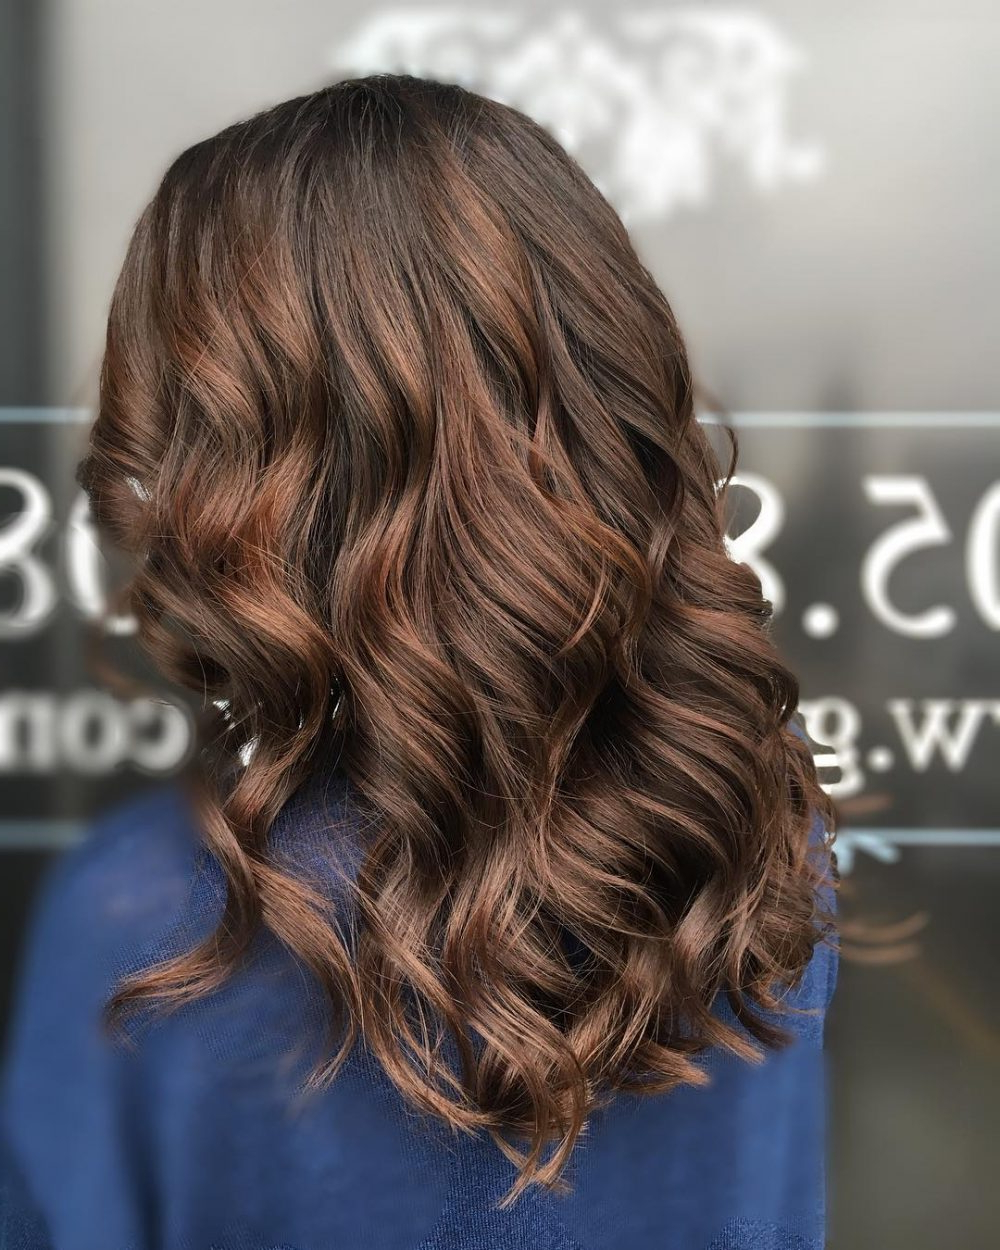 34 Sweetest Caramel Highlights On Light To Dark Brown Hair (2018) Pertaining To Curly Dark Brown Bob Hairstyles With Partial Balayage (View 18 of 25)